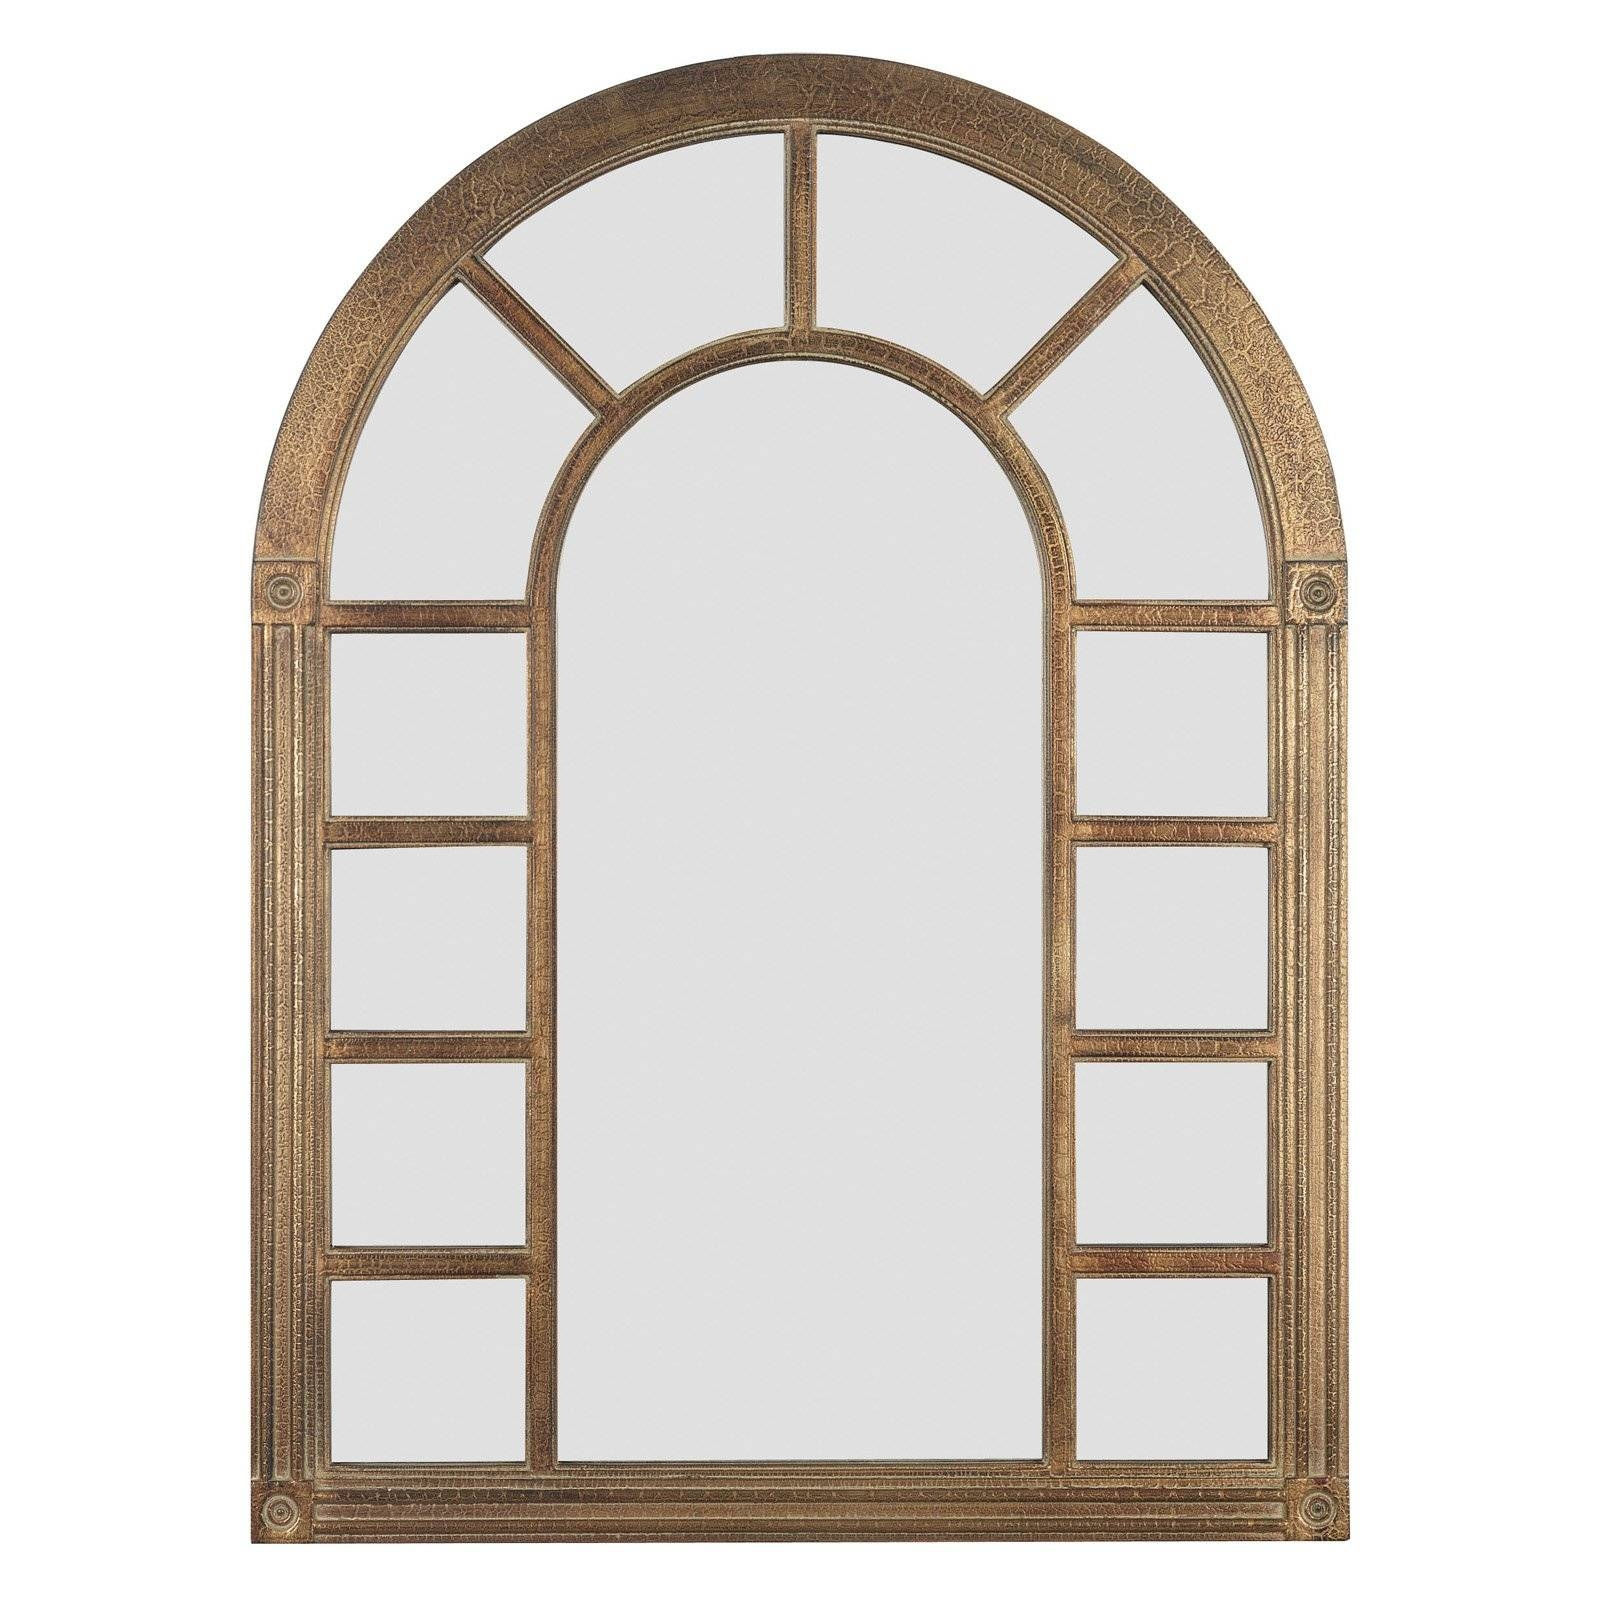 Aspire Home Accents Arched Window Wall Mirror - 25W X 42H In throughout Arched Wall Mirrors (Image 2 of 15)